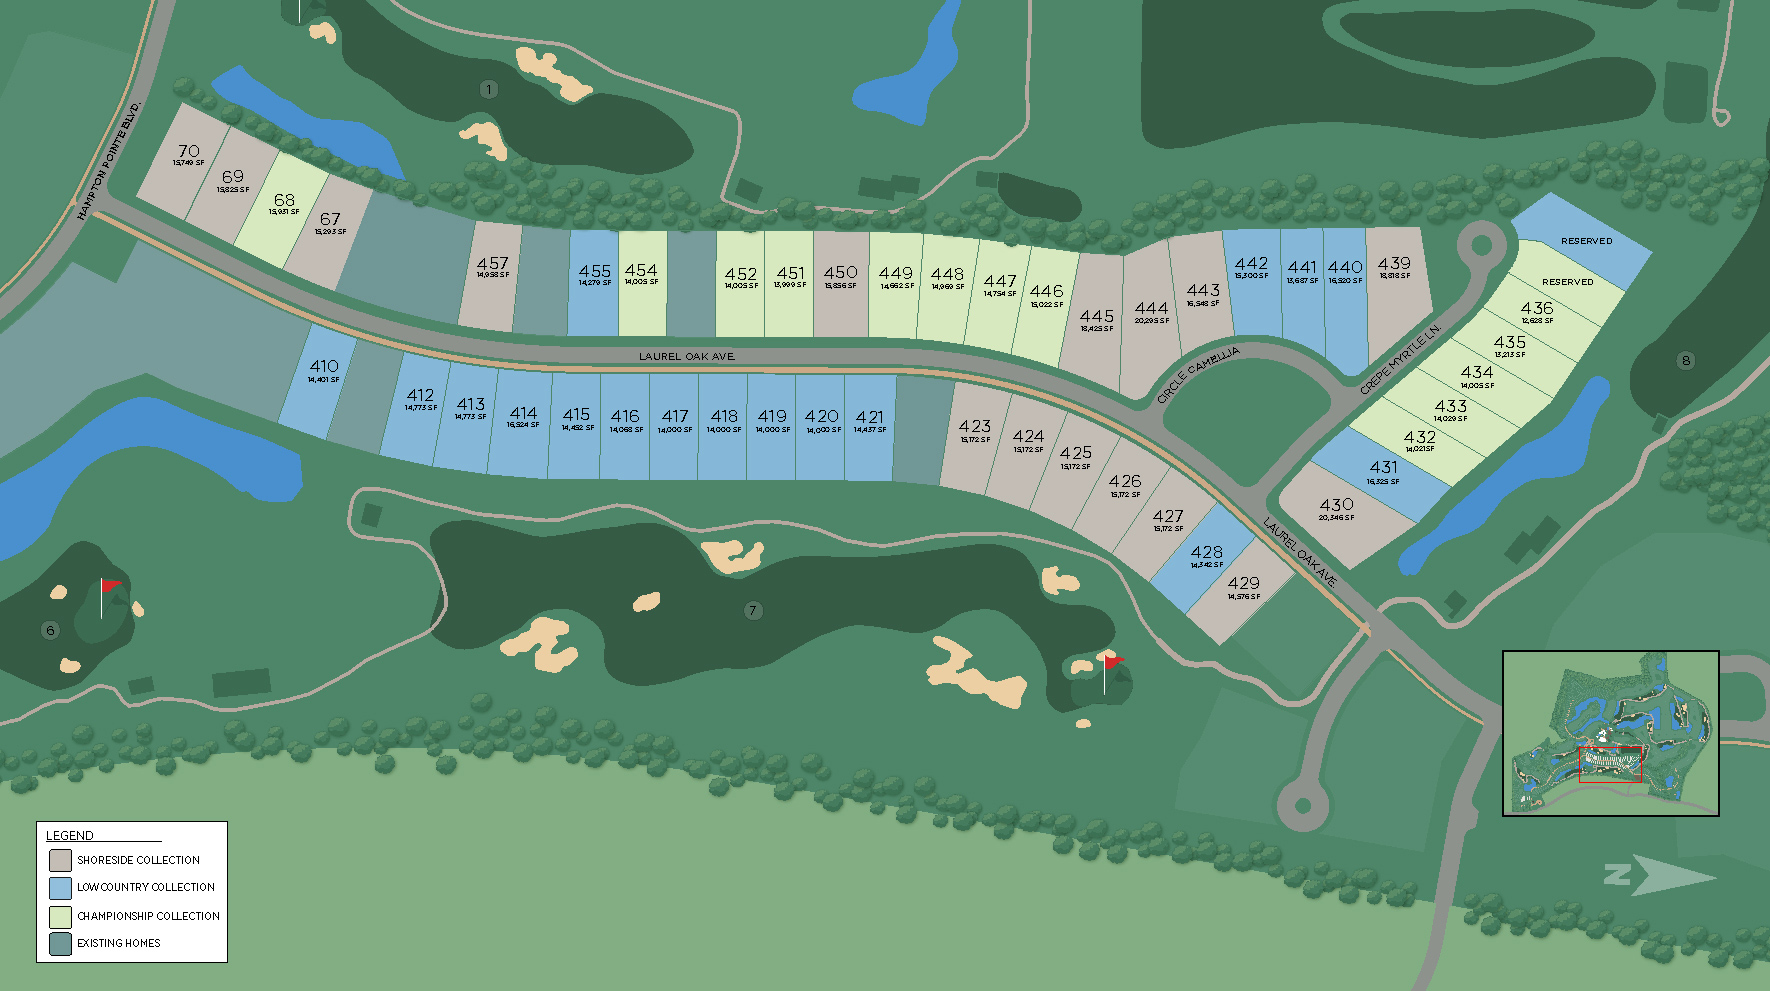 Riverton Pointe - Lowcountry Collection Site Plan